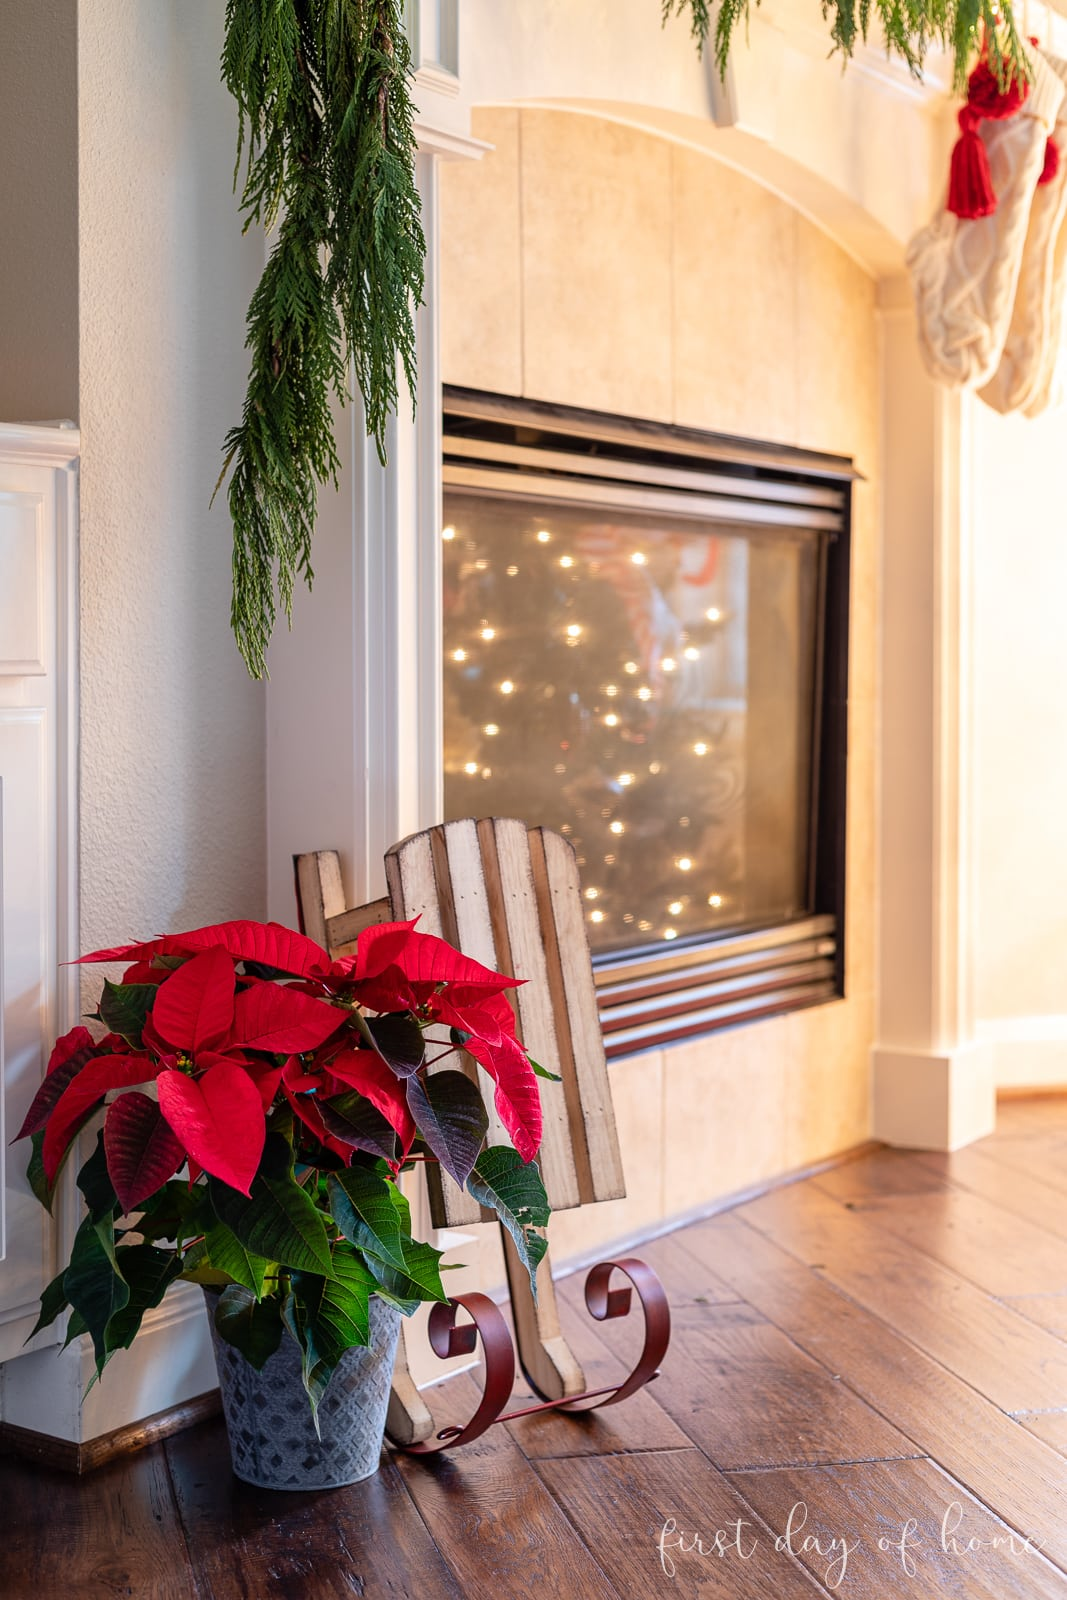 Poinsettia plant at base of fireplace next to sled